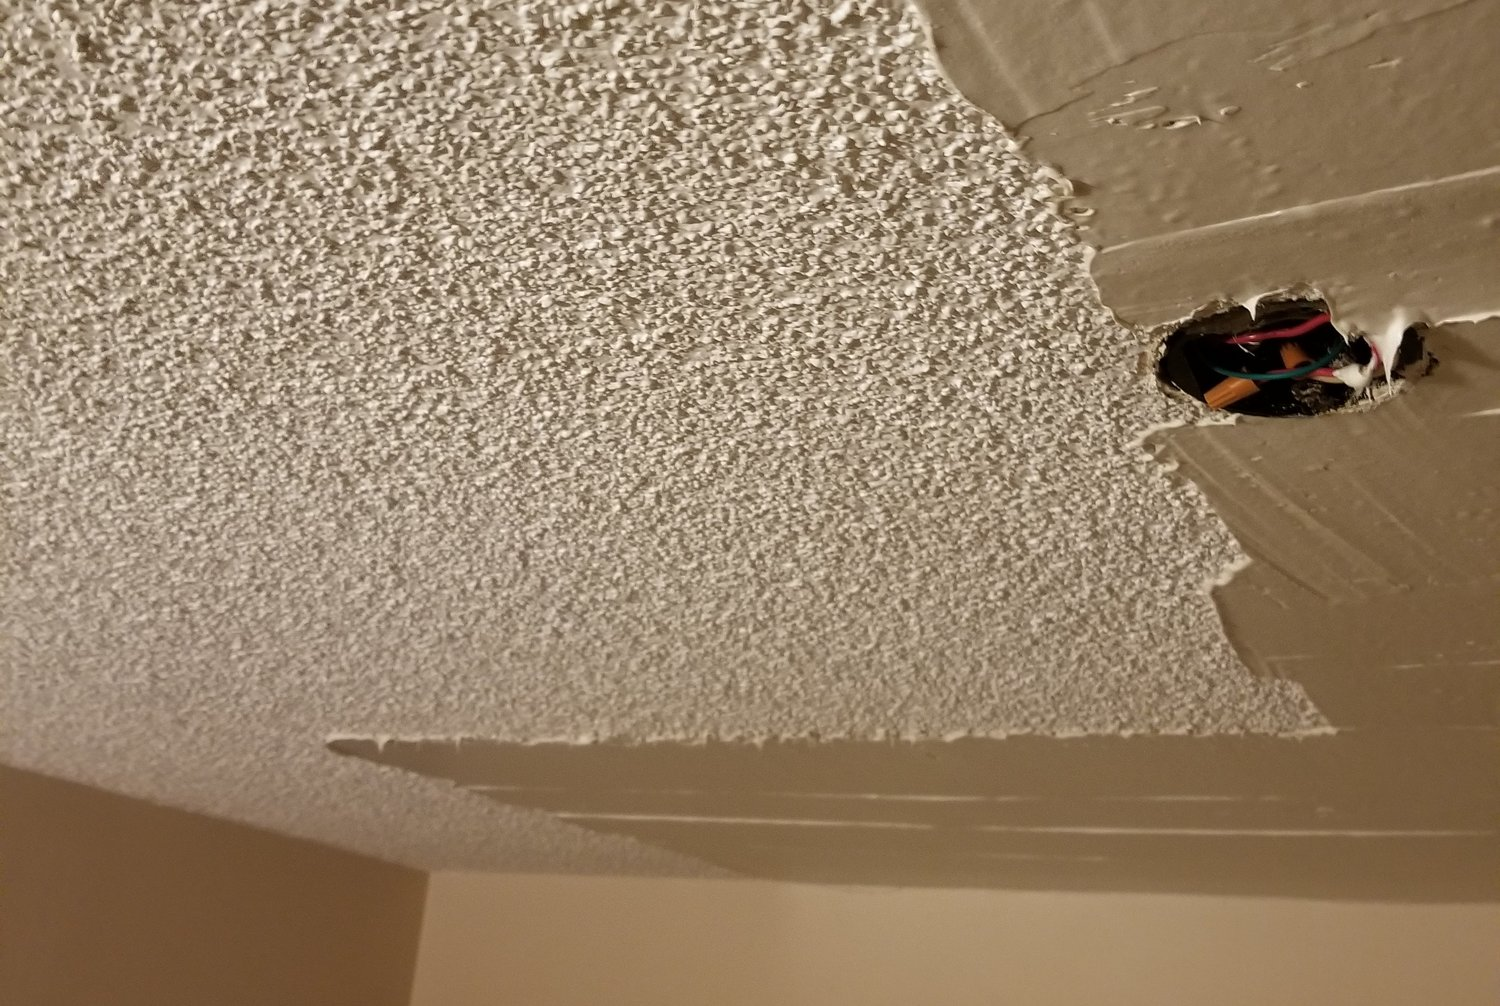 Popcorn Ceiling Removal-Odessa TX Professional Painting Contractors-We offer Residential & Commercial Painting, Interior Painting, Exterior Painting, Primer Painting, Industrial Painting, Professional Painters, Institutional Painters, and more.